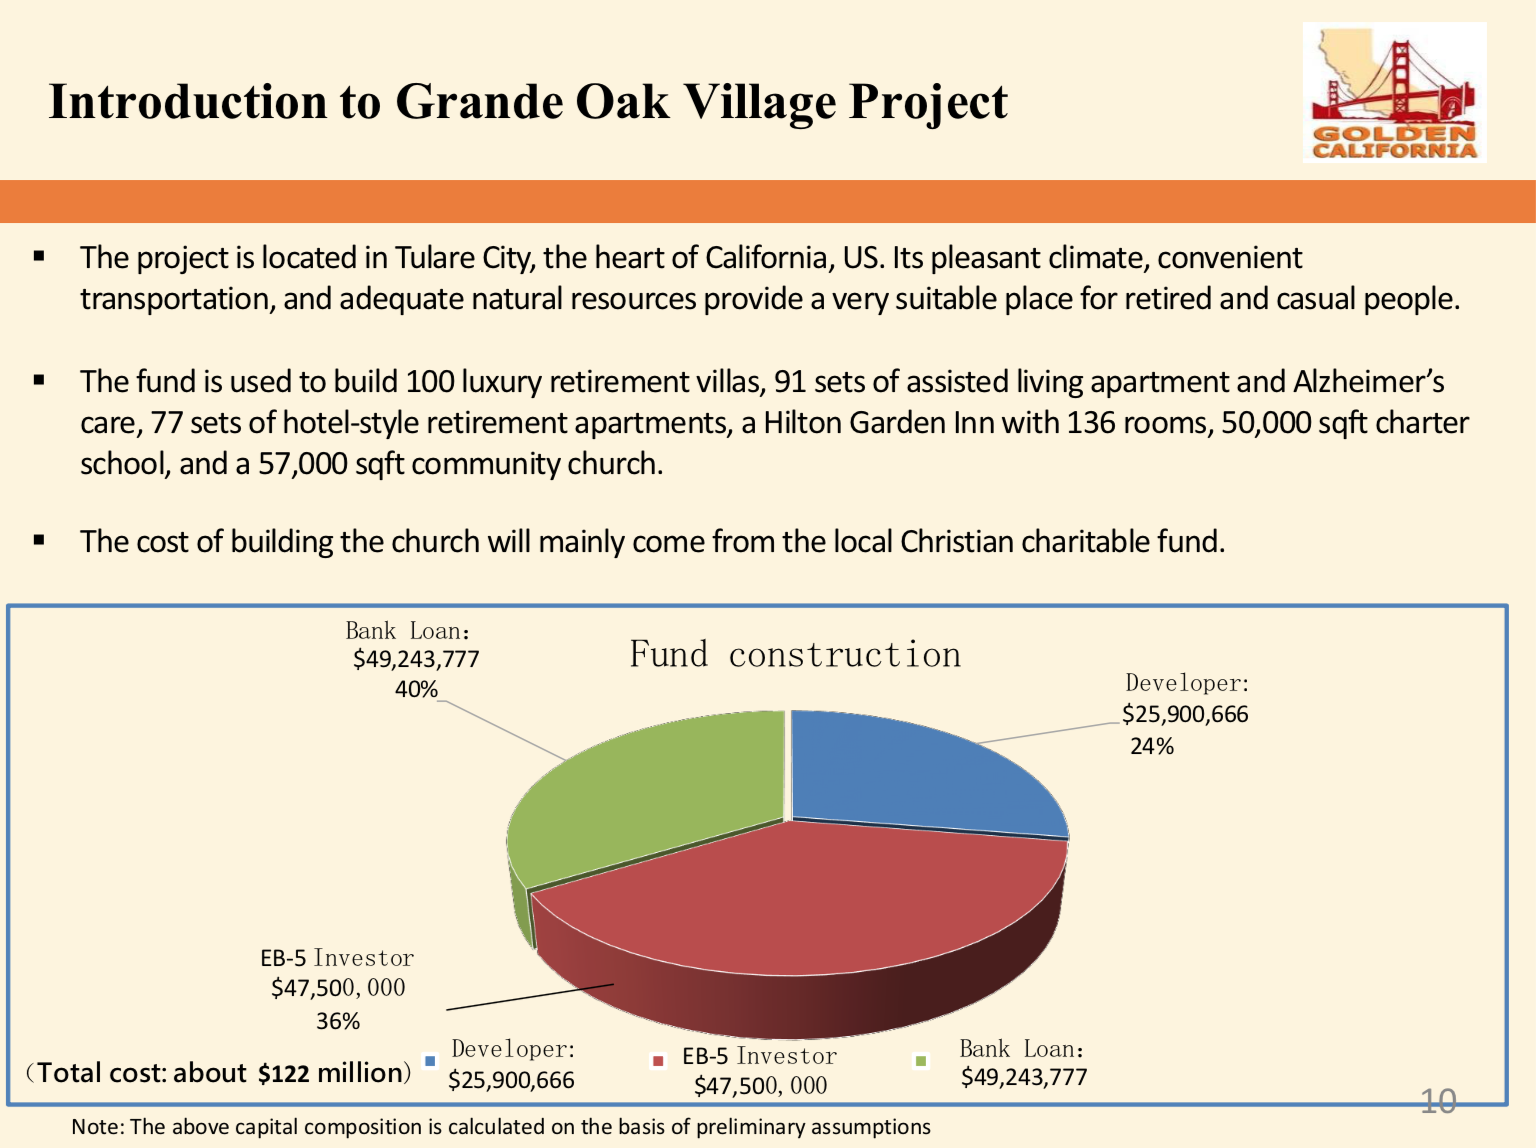 introduction to Grande Oak project